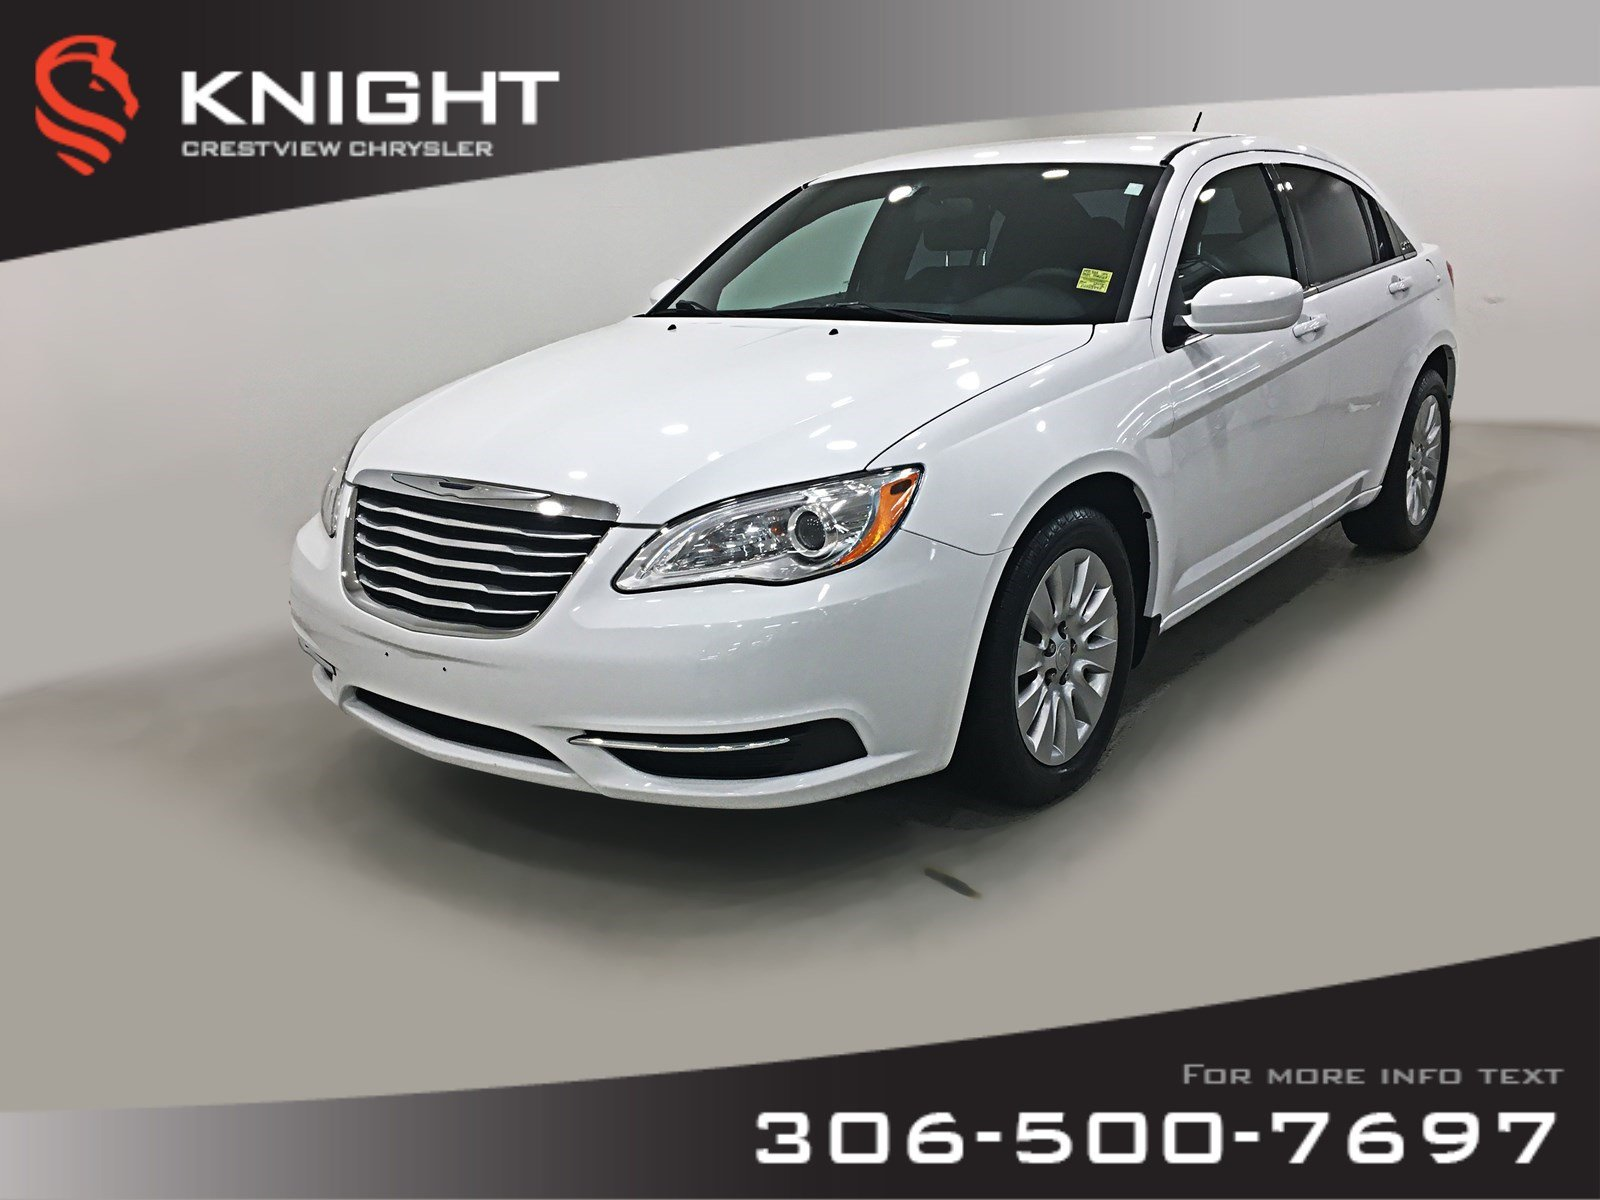 Certified Pre-Owned 2014 Chrysler 200 LX | Remote Start